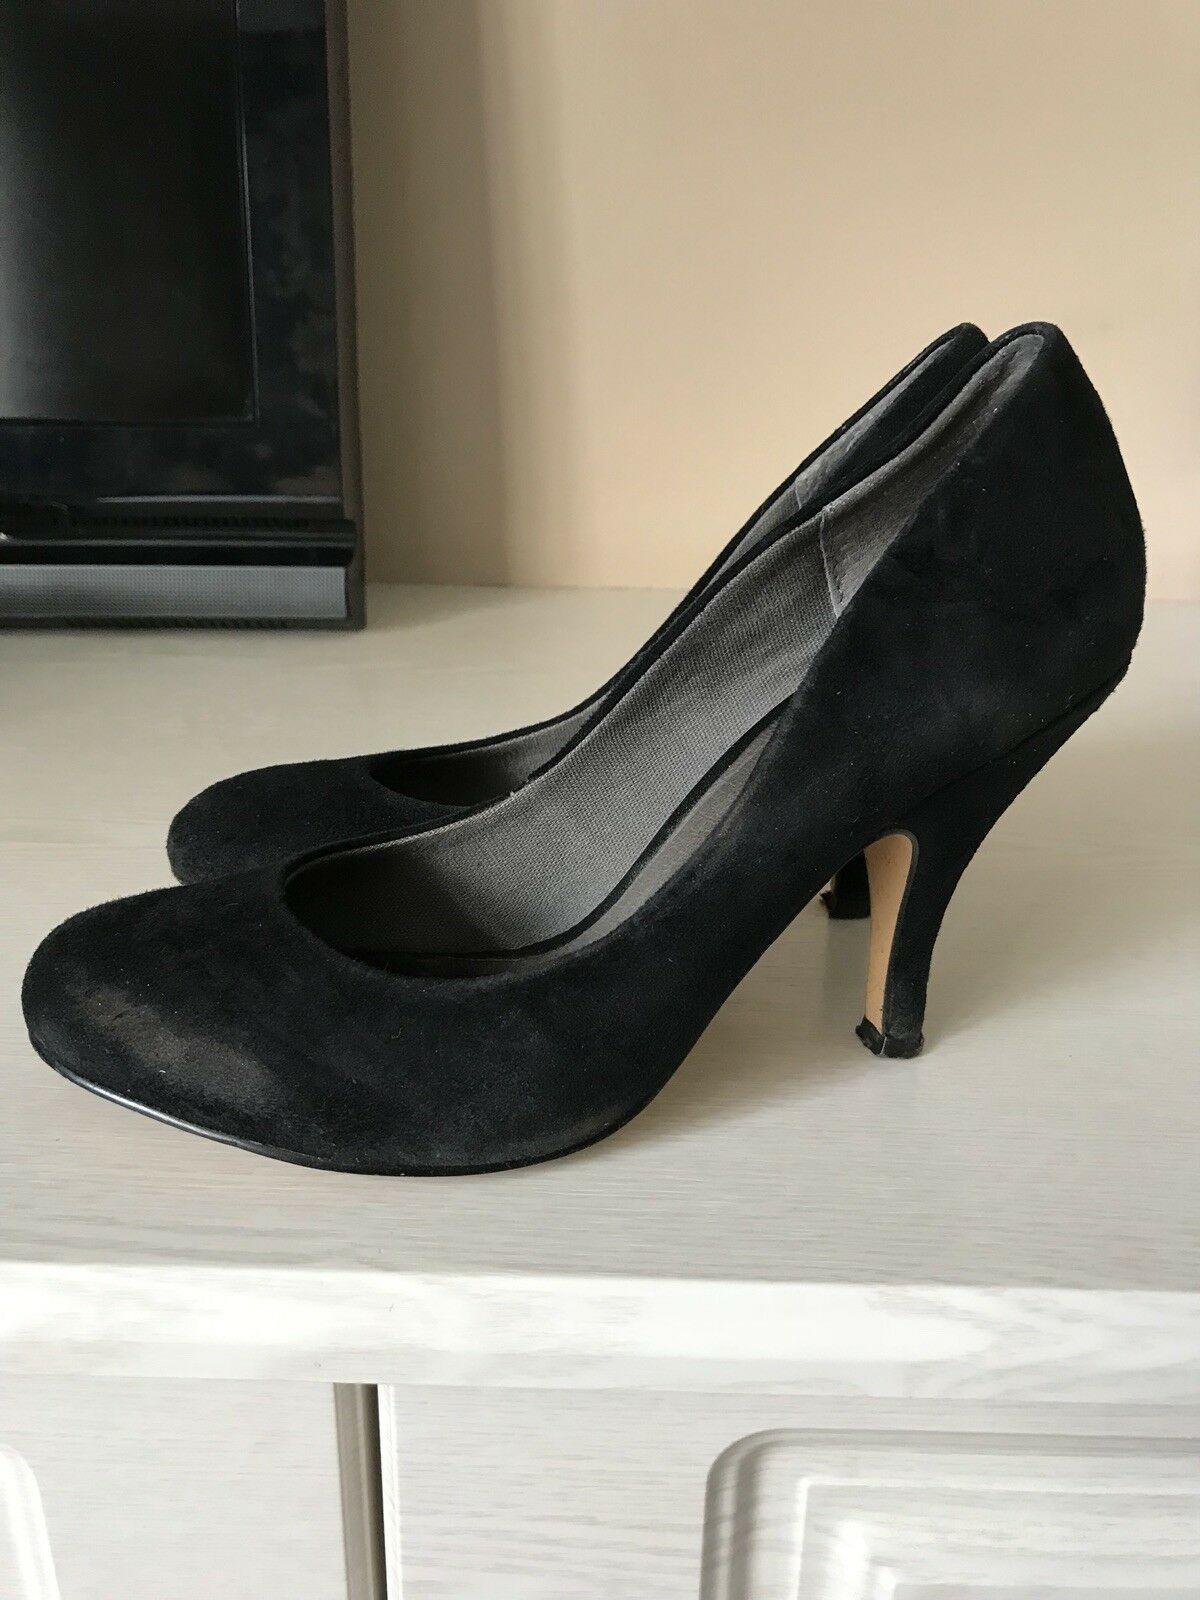 ASOS Black Suede Effect High Heeled Court Shoes sz 5